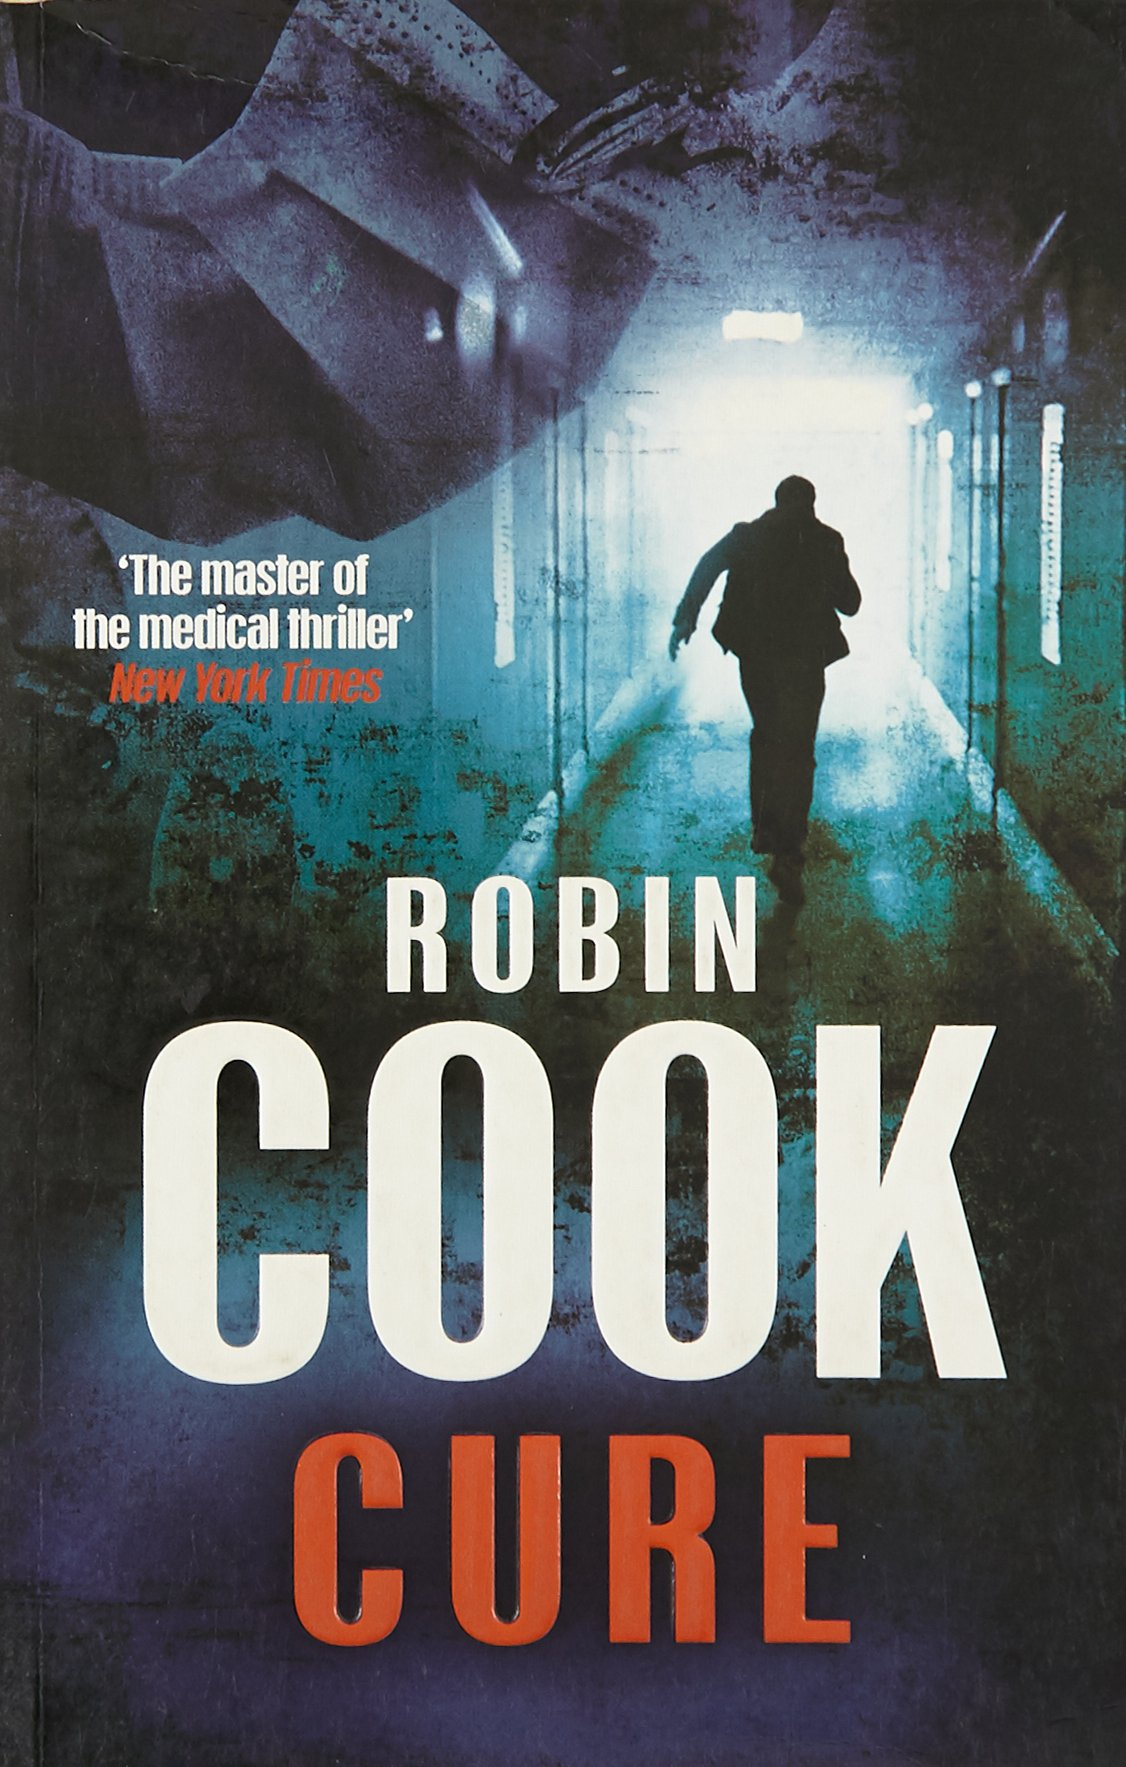 Ebook robin download free cook cure